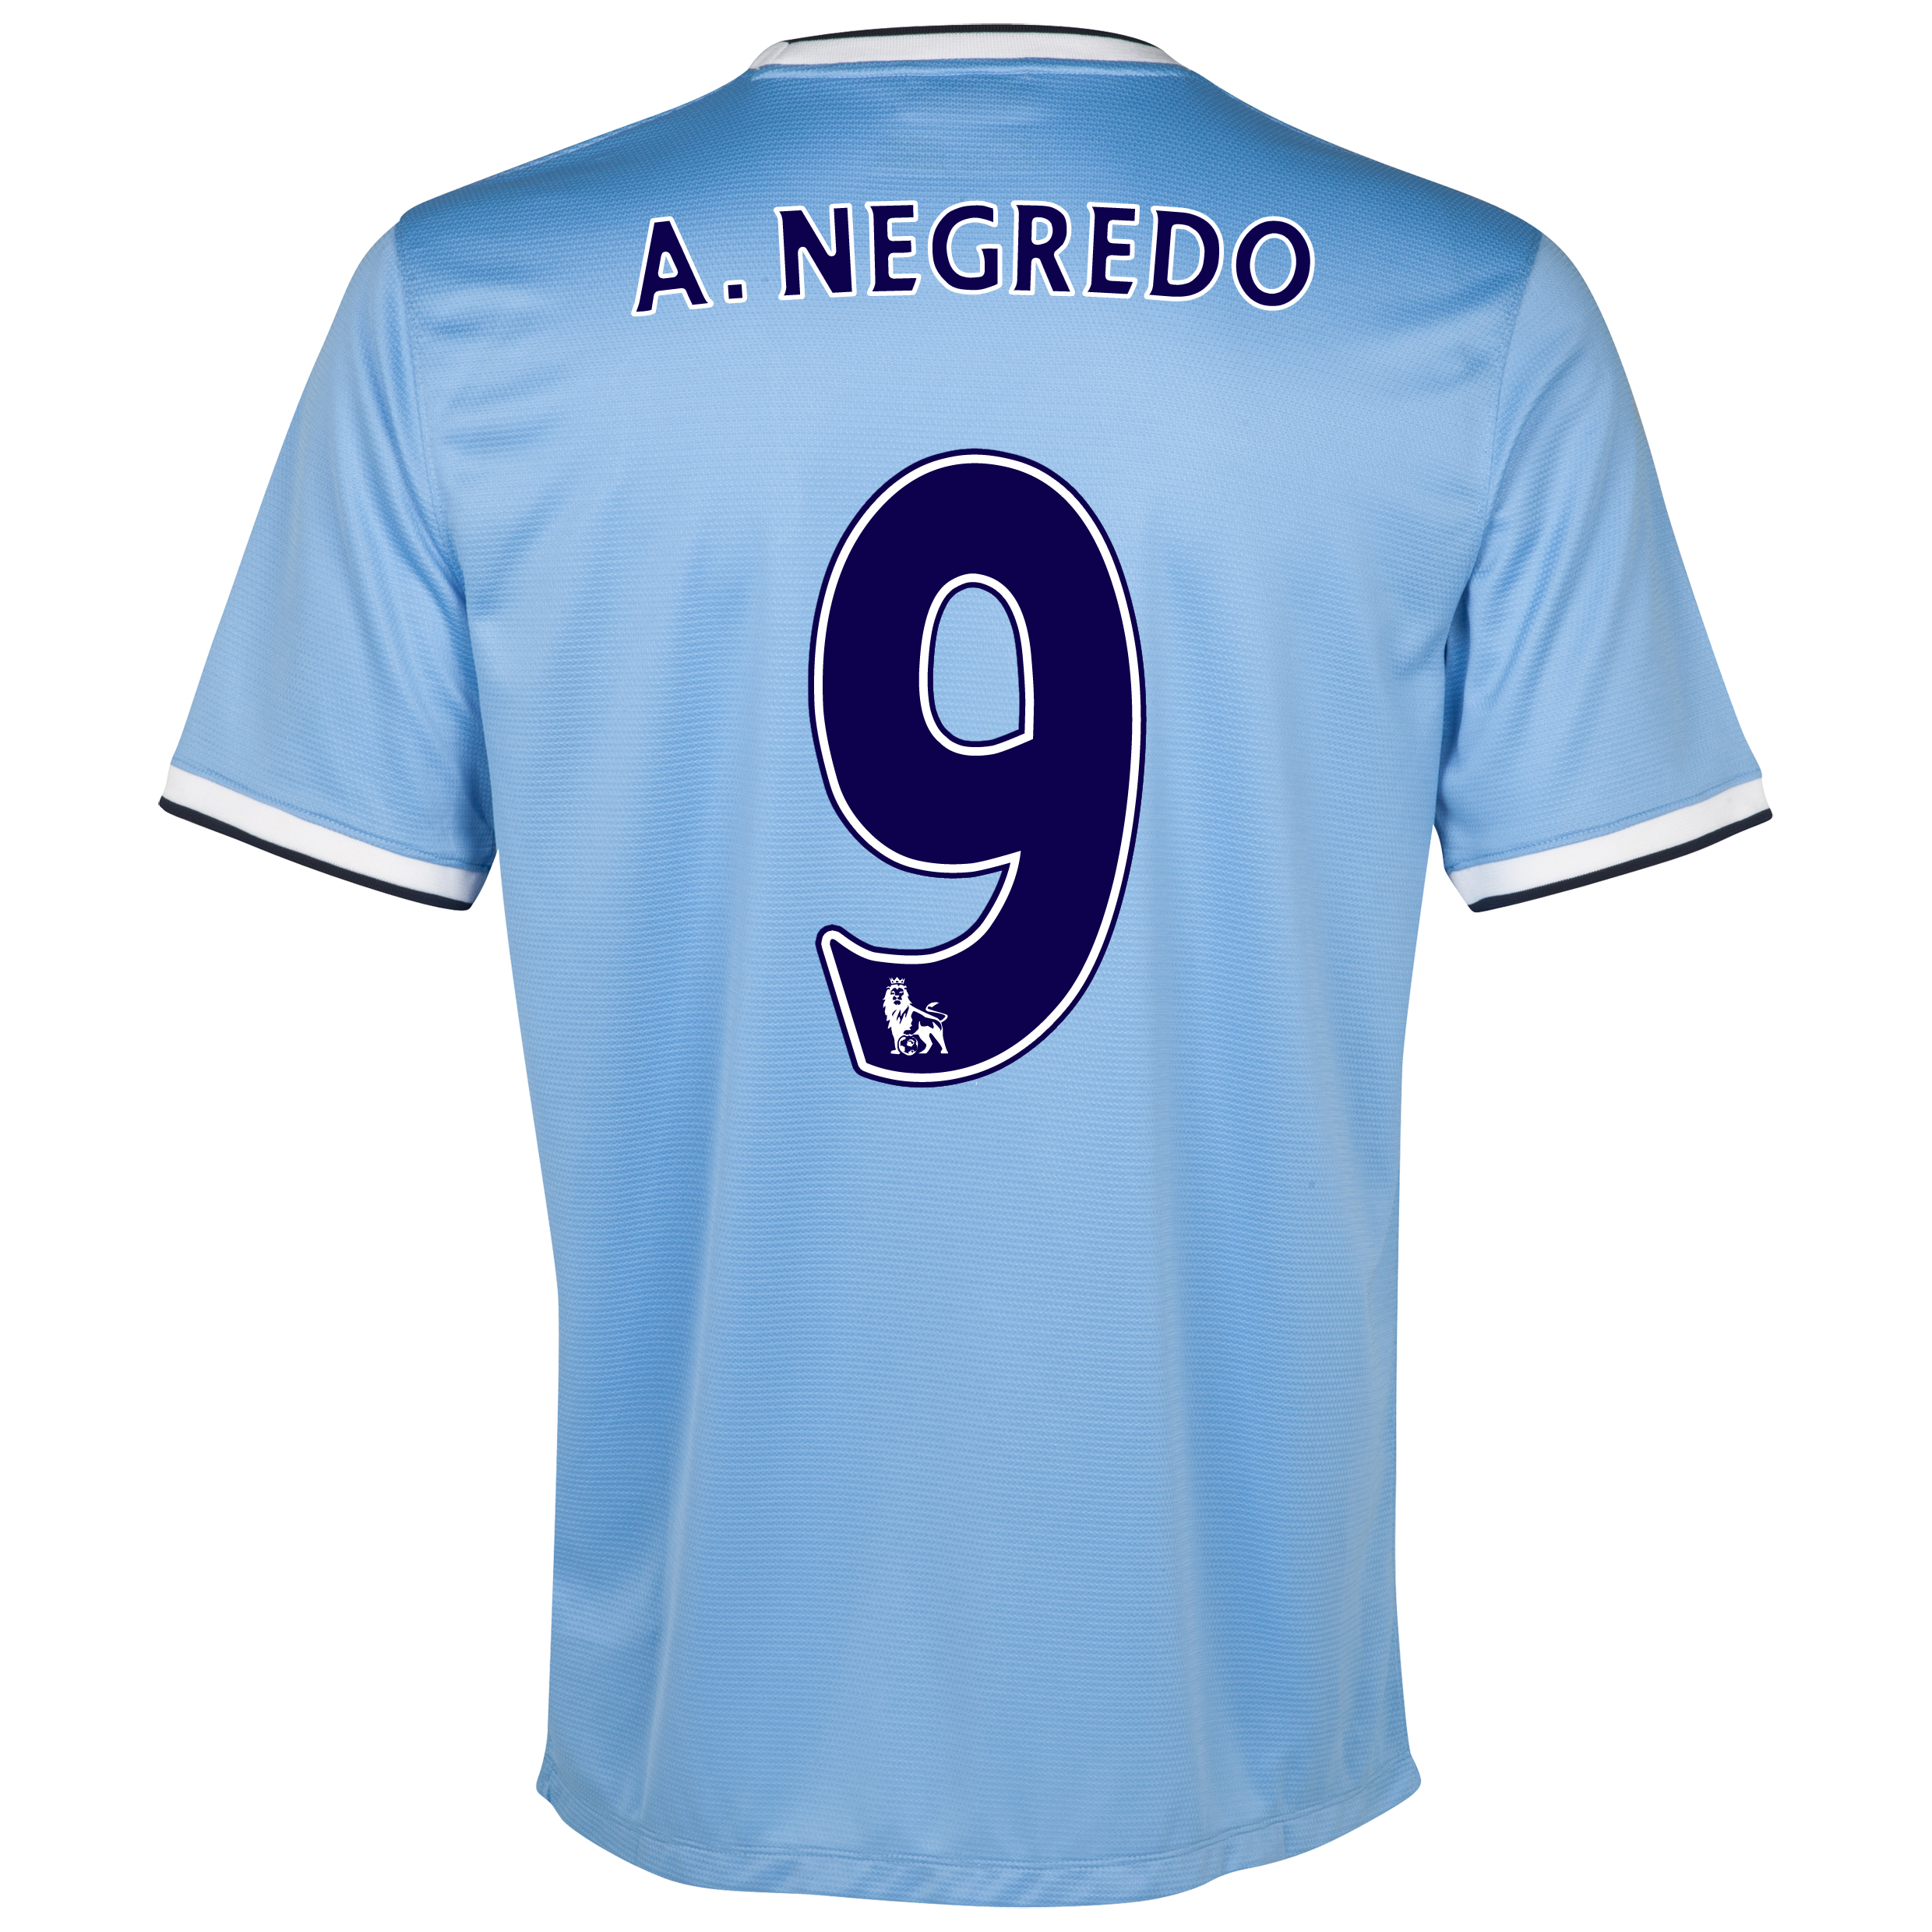 Manchester City Home Shirt 2013/14 with A.Negredo 9 printing